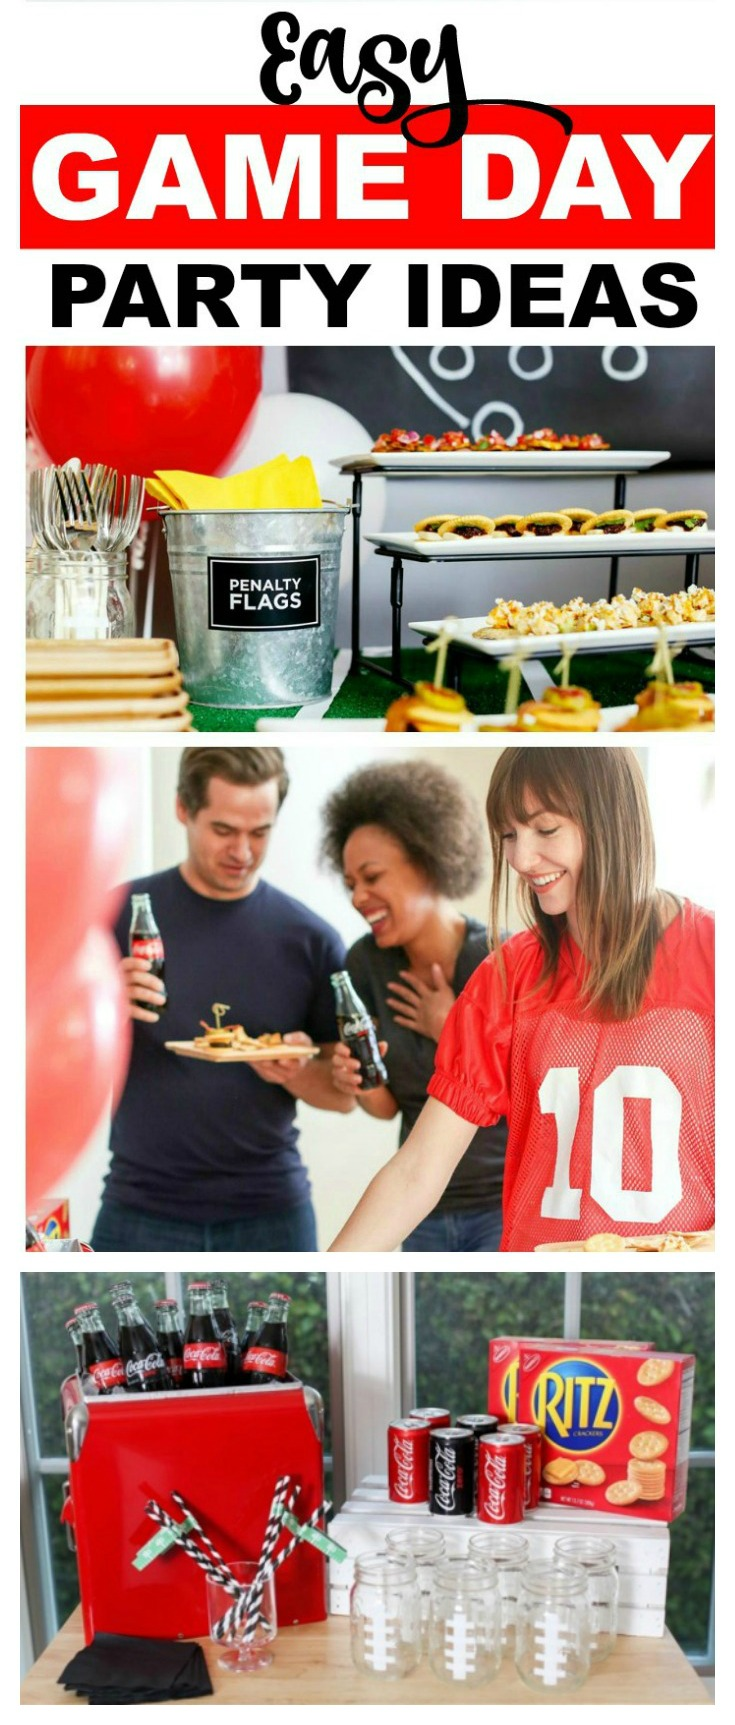 5 Tips For Throwing An Awesome Game Day Party!